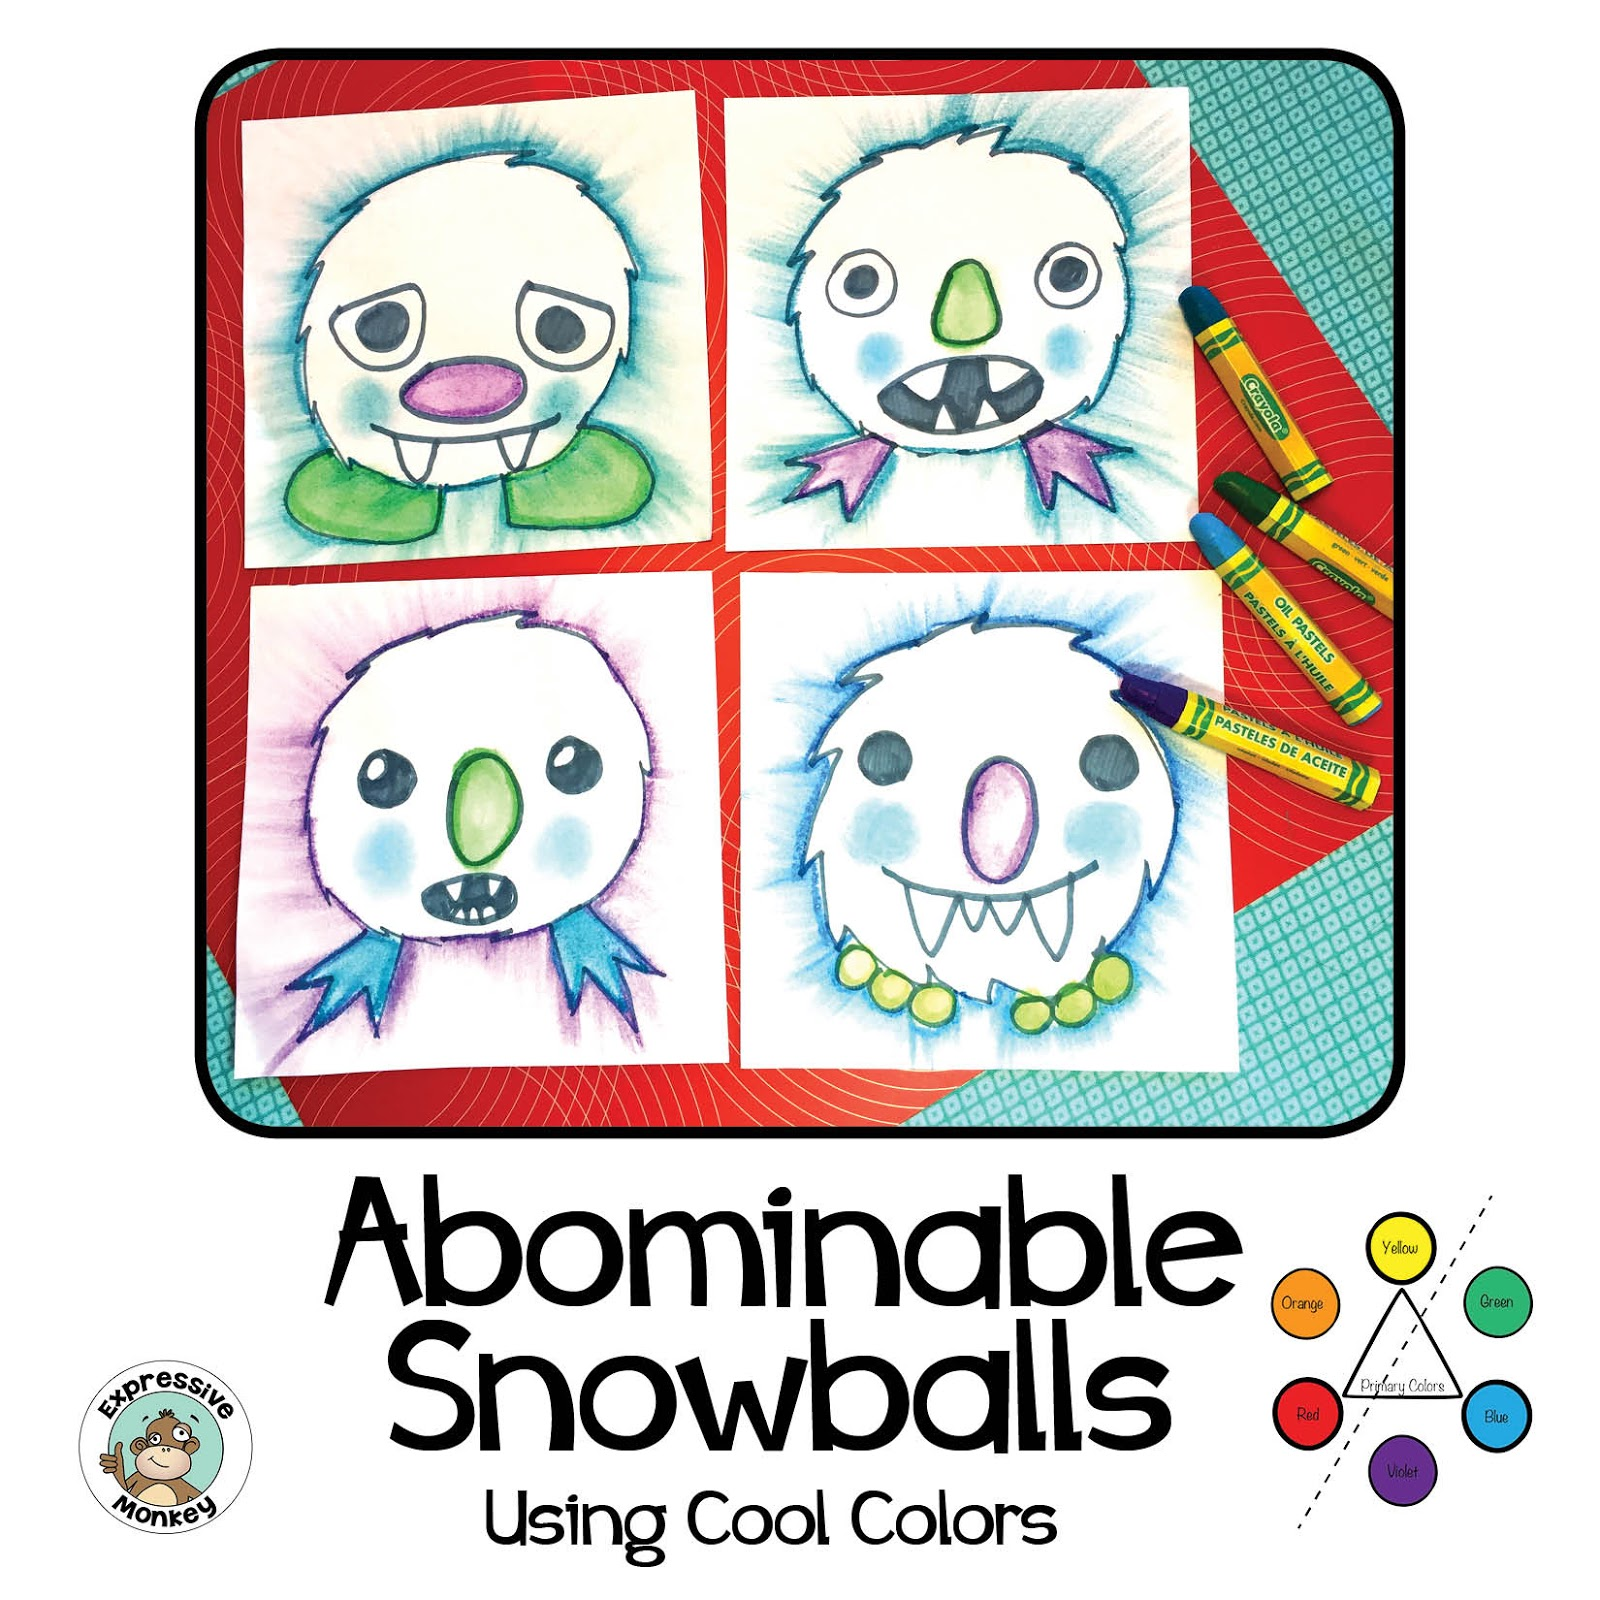 1600x1600 Oil Pastel Technique For Abominable Snowballs Expressive Monkey